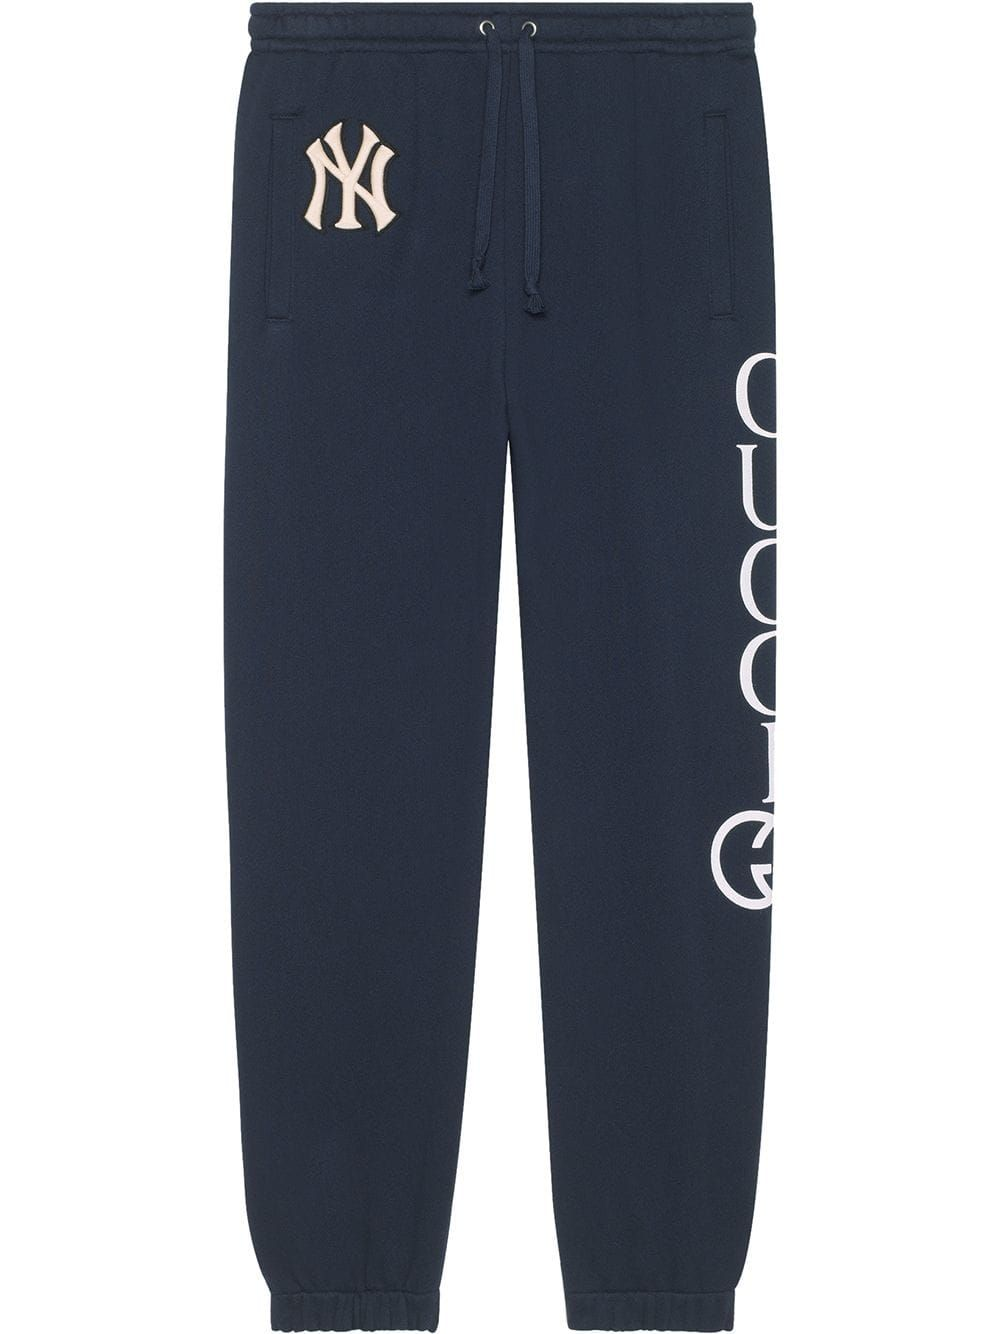 b55afc32d Gucci Cotton jogging pant with NY Yankees™ patch - Blue | Products ...